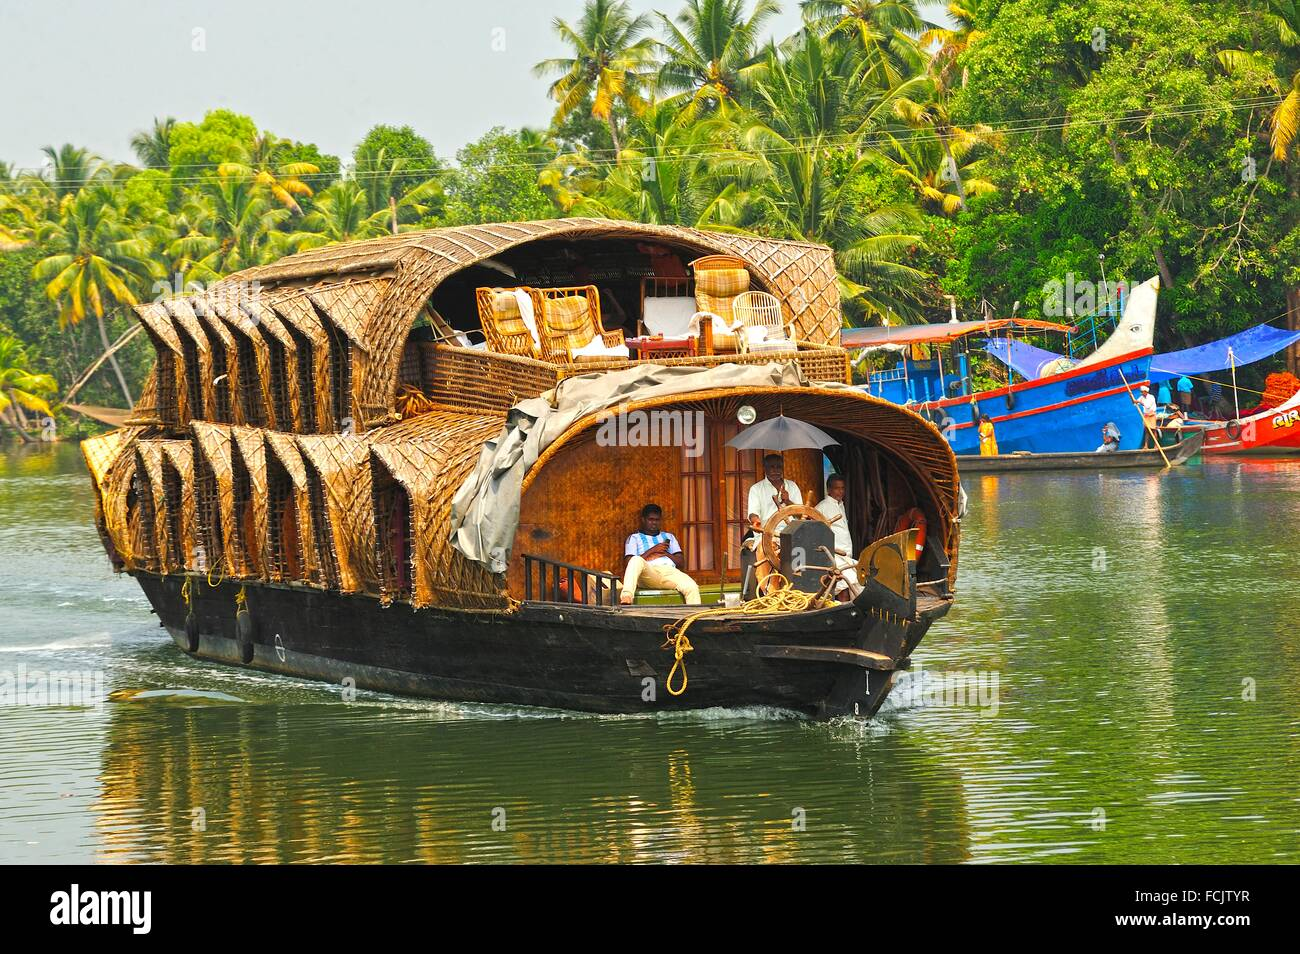 house boat in backwaters between Kollam and Cochin, Kerala, India. - Stock Image